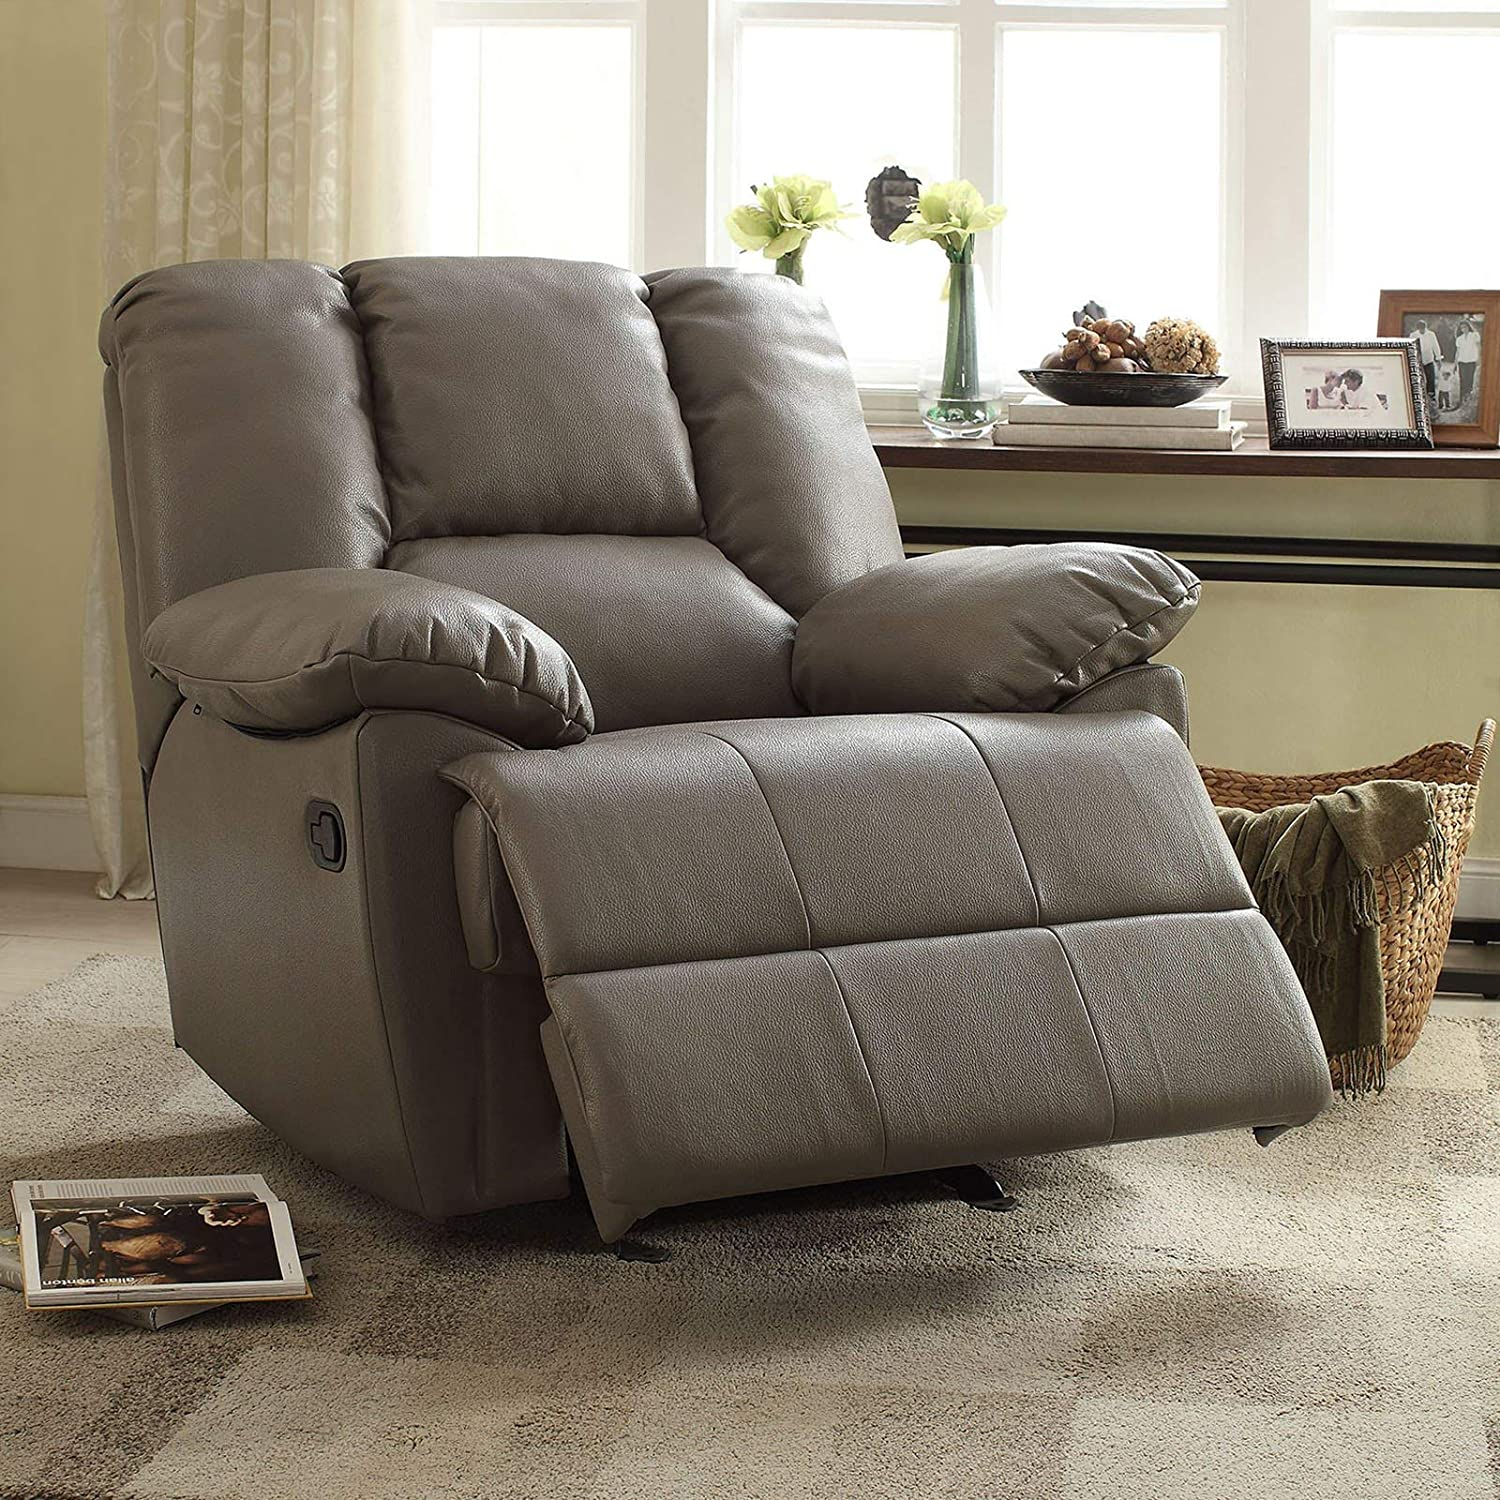 Admirable Major Q 7859425 Air Leather Extra Large Rocking Recliner Chair Fits 6 Feet 230Lbs 9059436 Ibusinesslaw Wood Chair Design Ideas Ibusinesslaworg